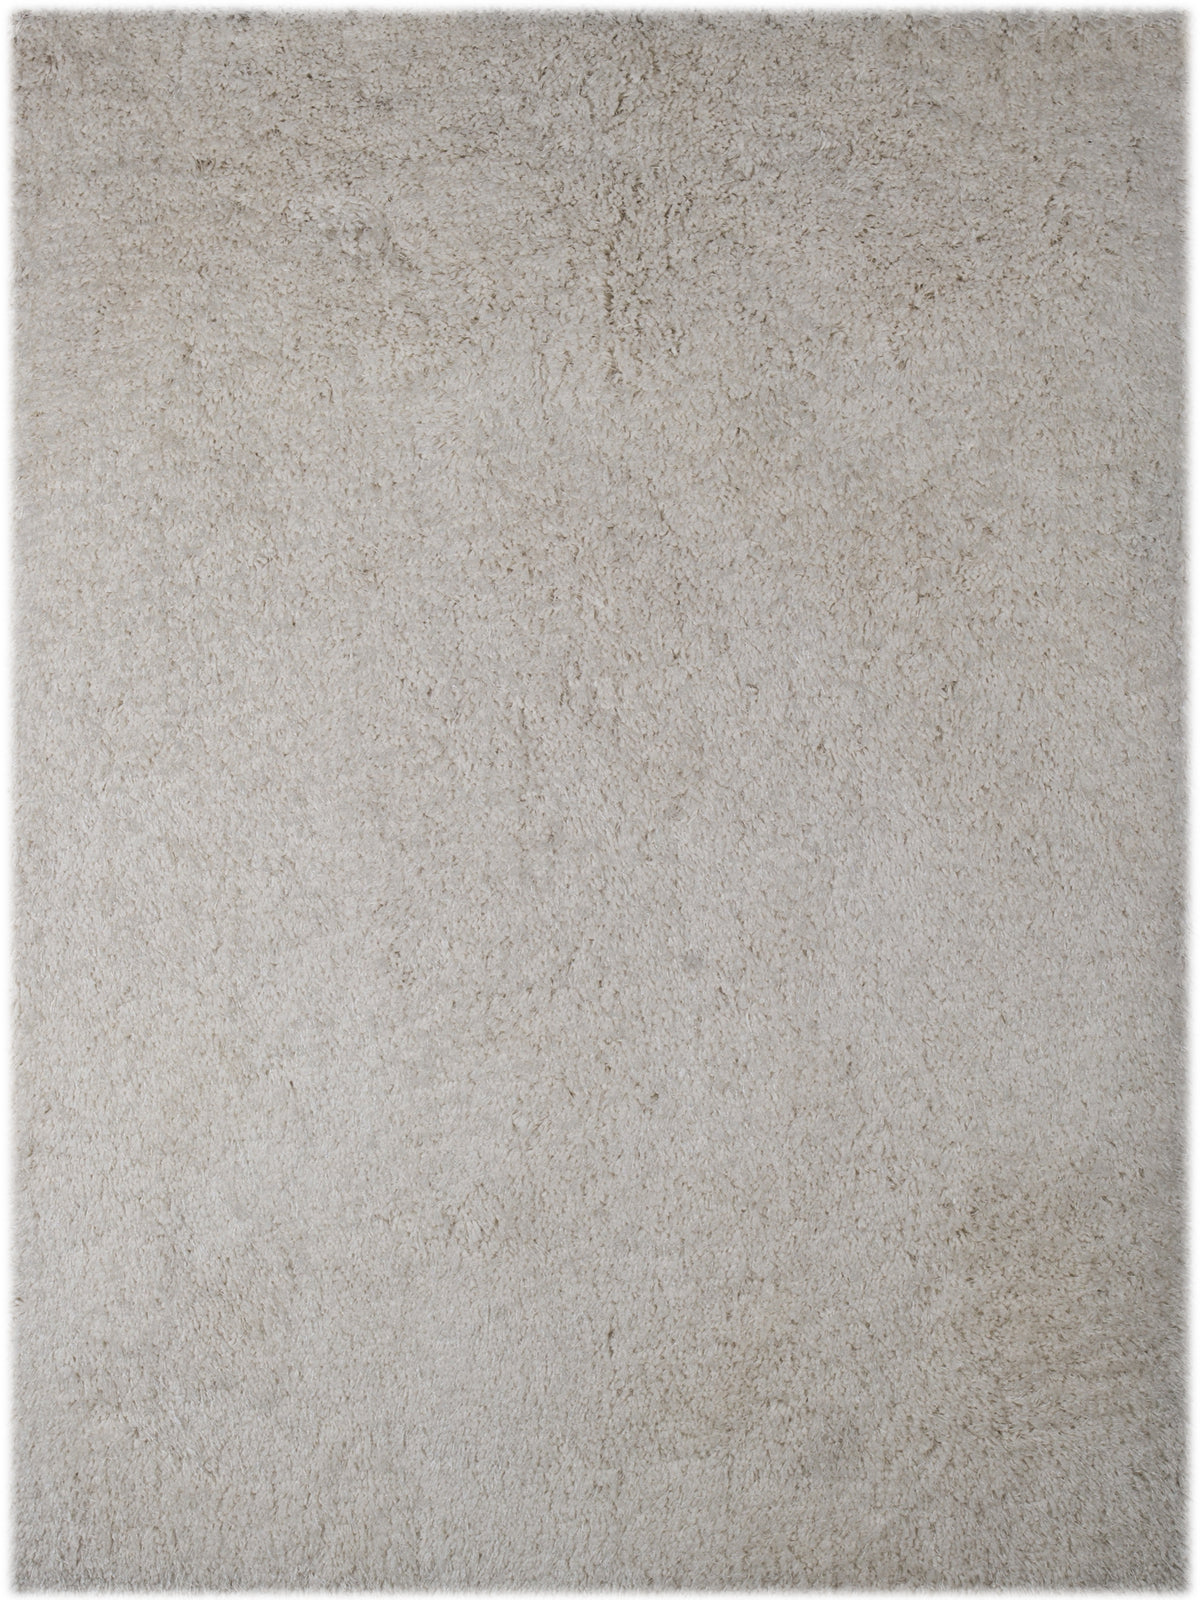 Amer Illustrations ILT-5 White Area Rug main image